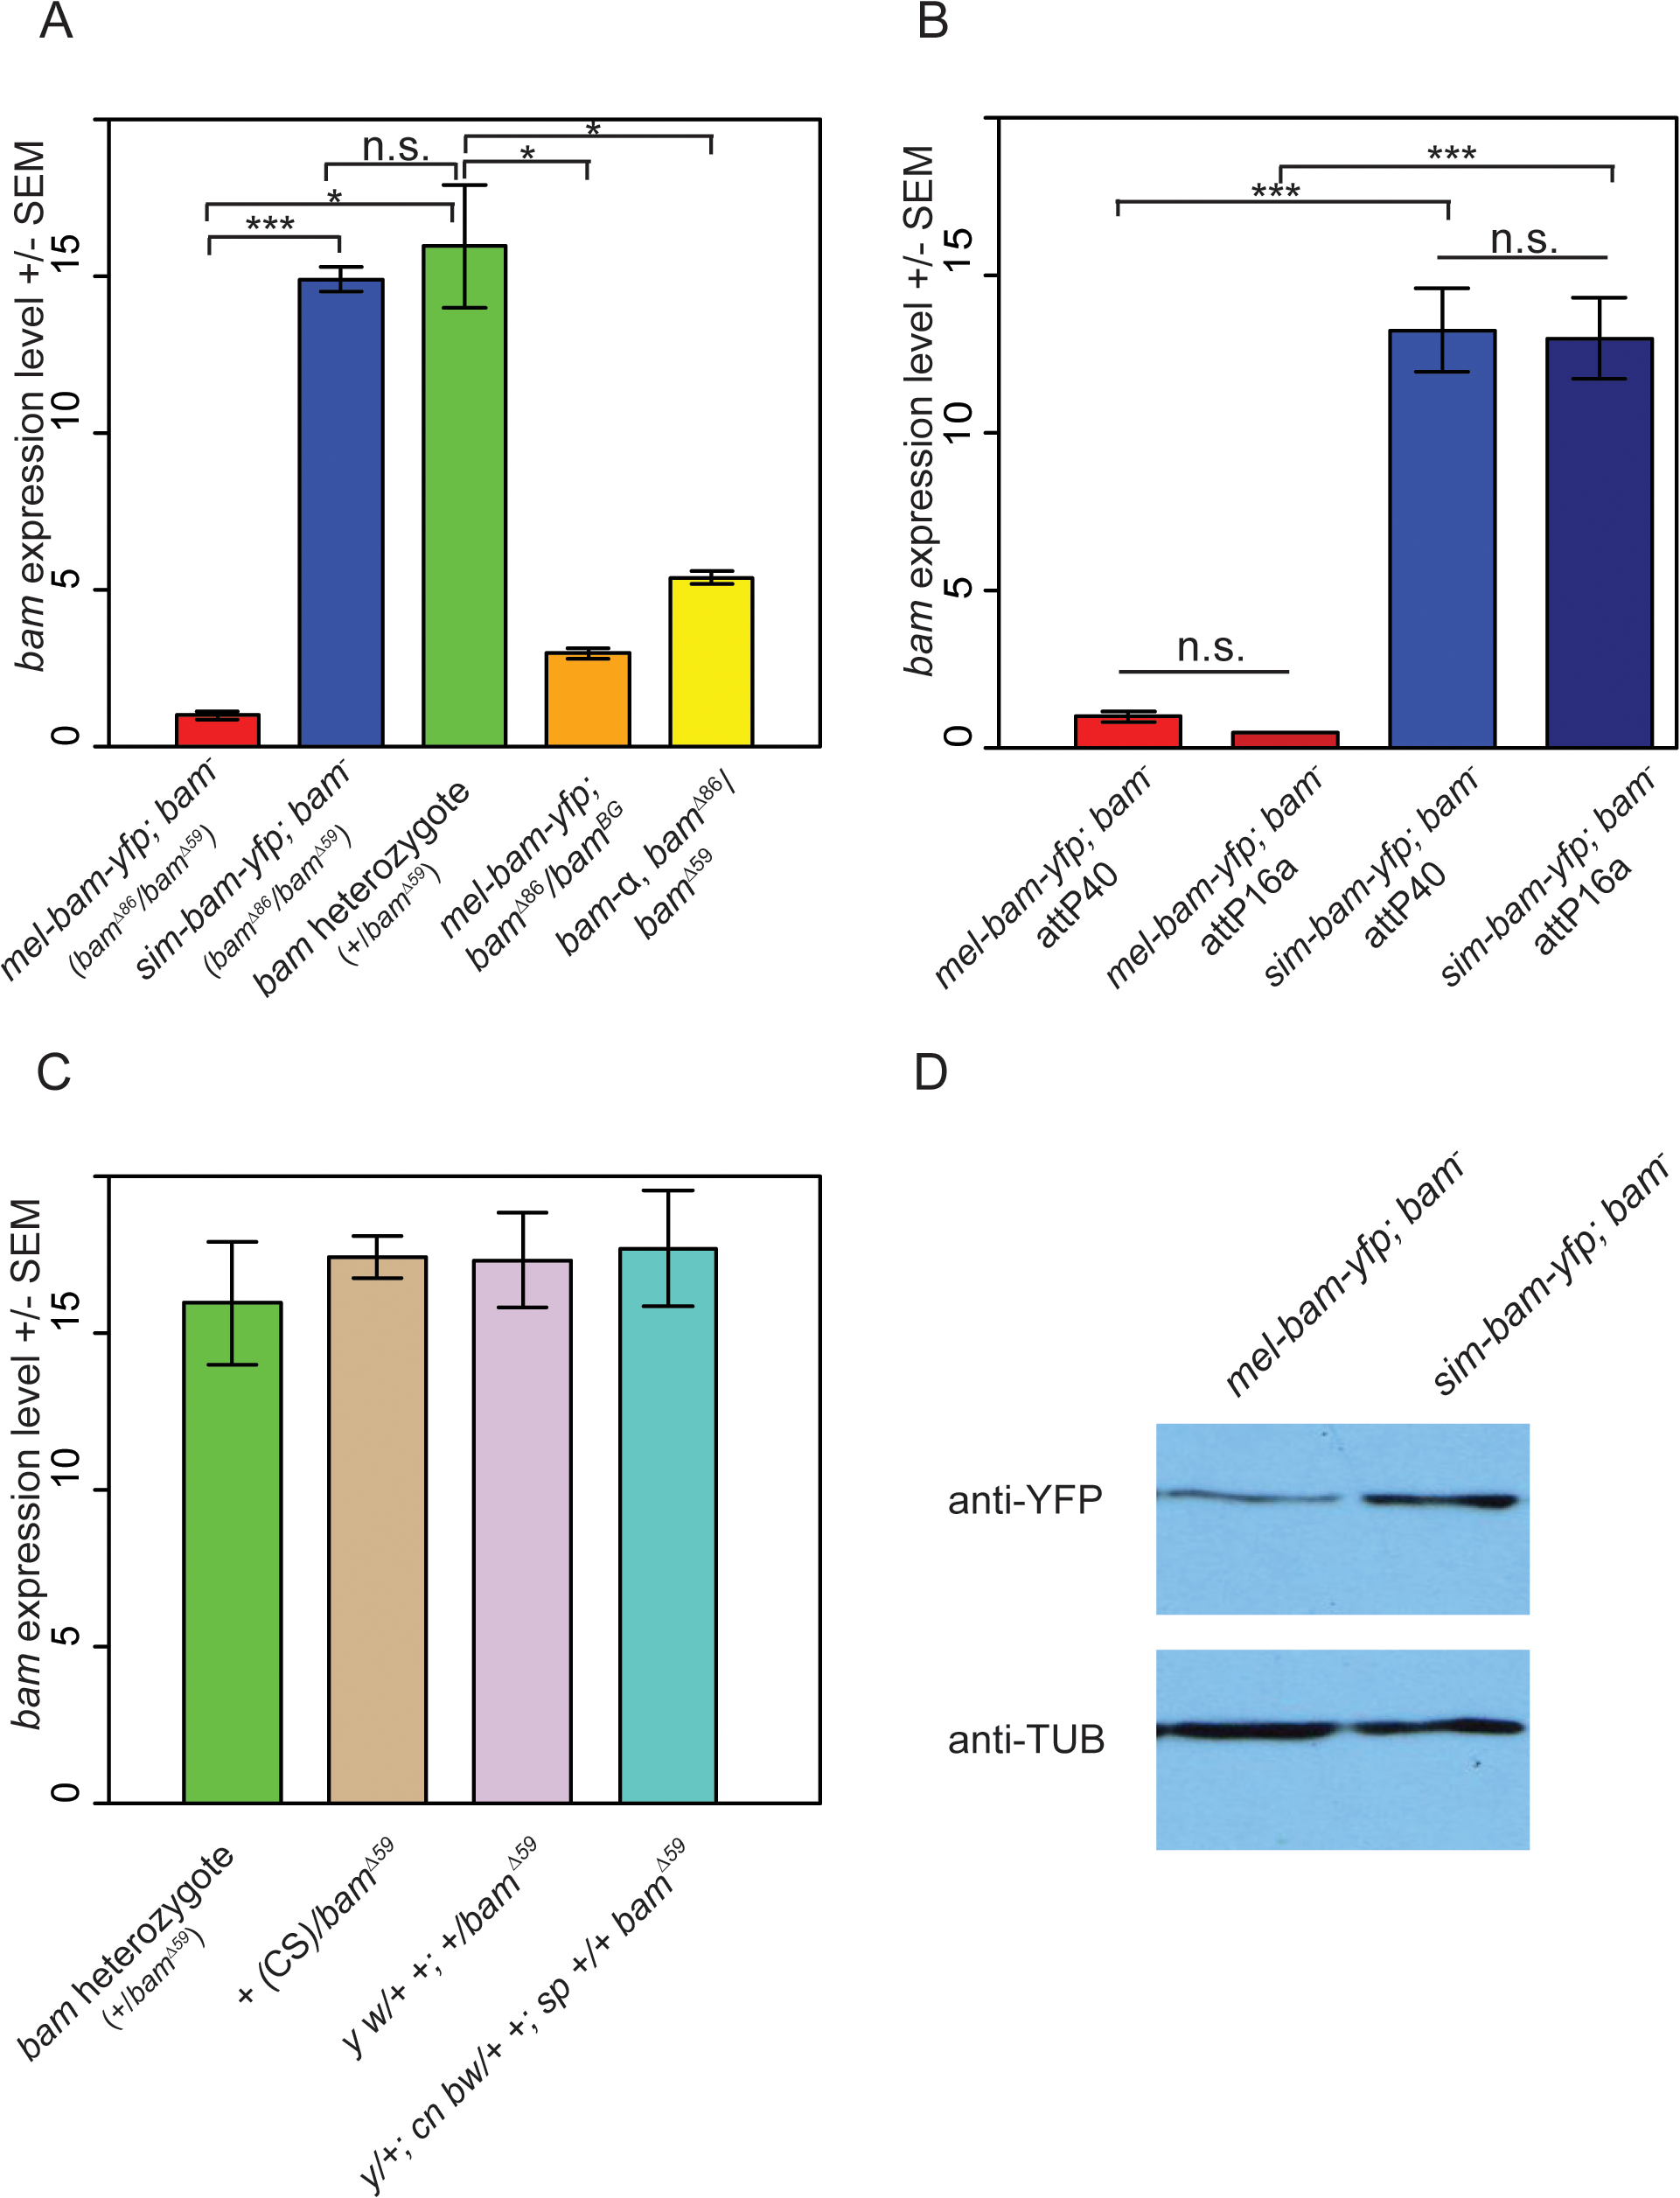 Analysis of <i>bam</i> RNA and protein expression in transgenic lines and control strains.